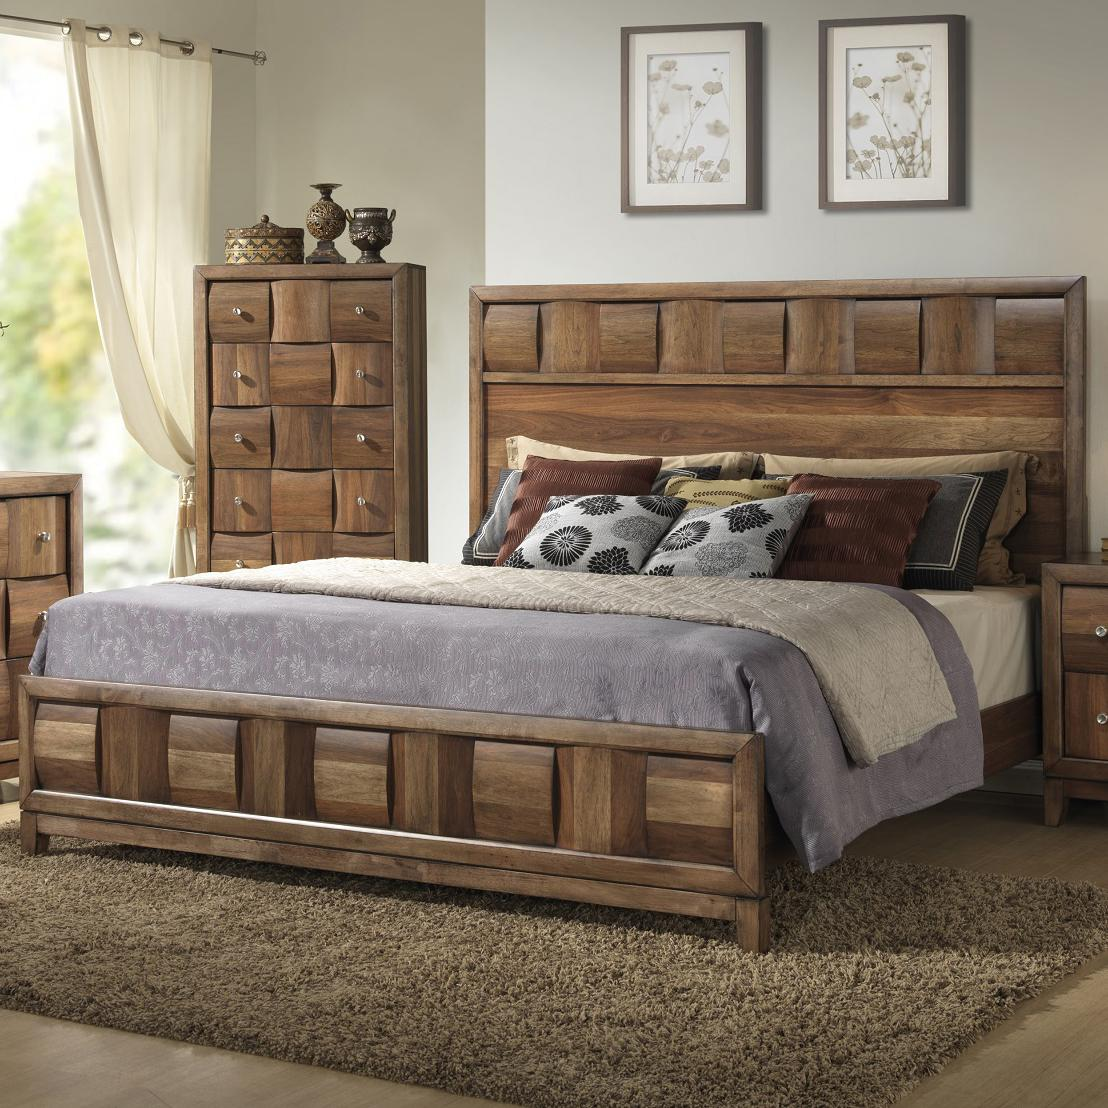 Lifestyle Bedroom Furniture Lifestyle Walnut Parquet Casual Queen Bed Royal Furniture